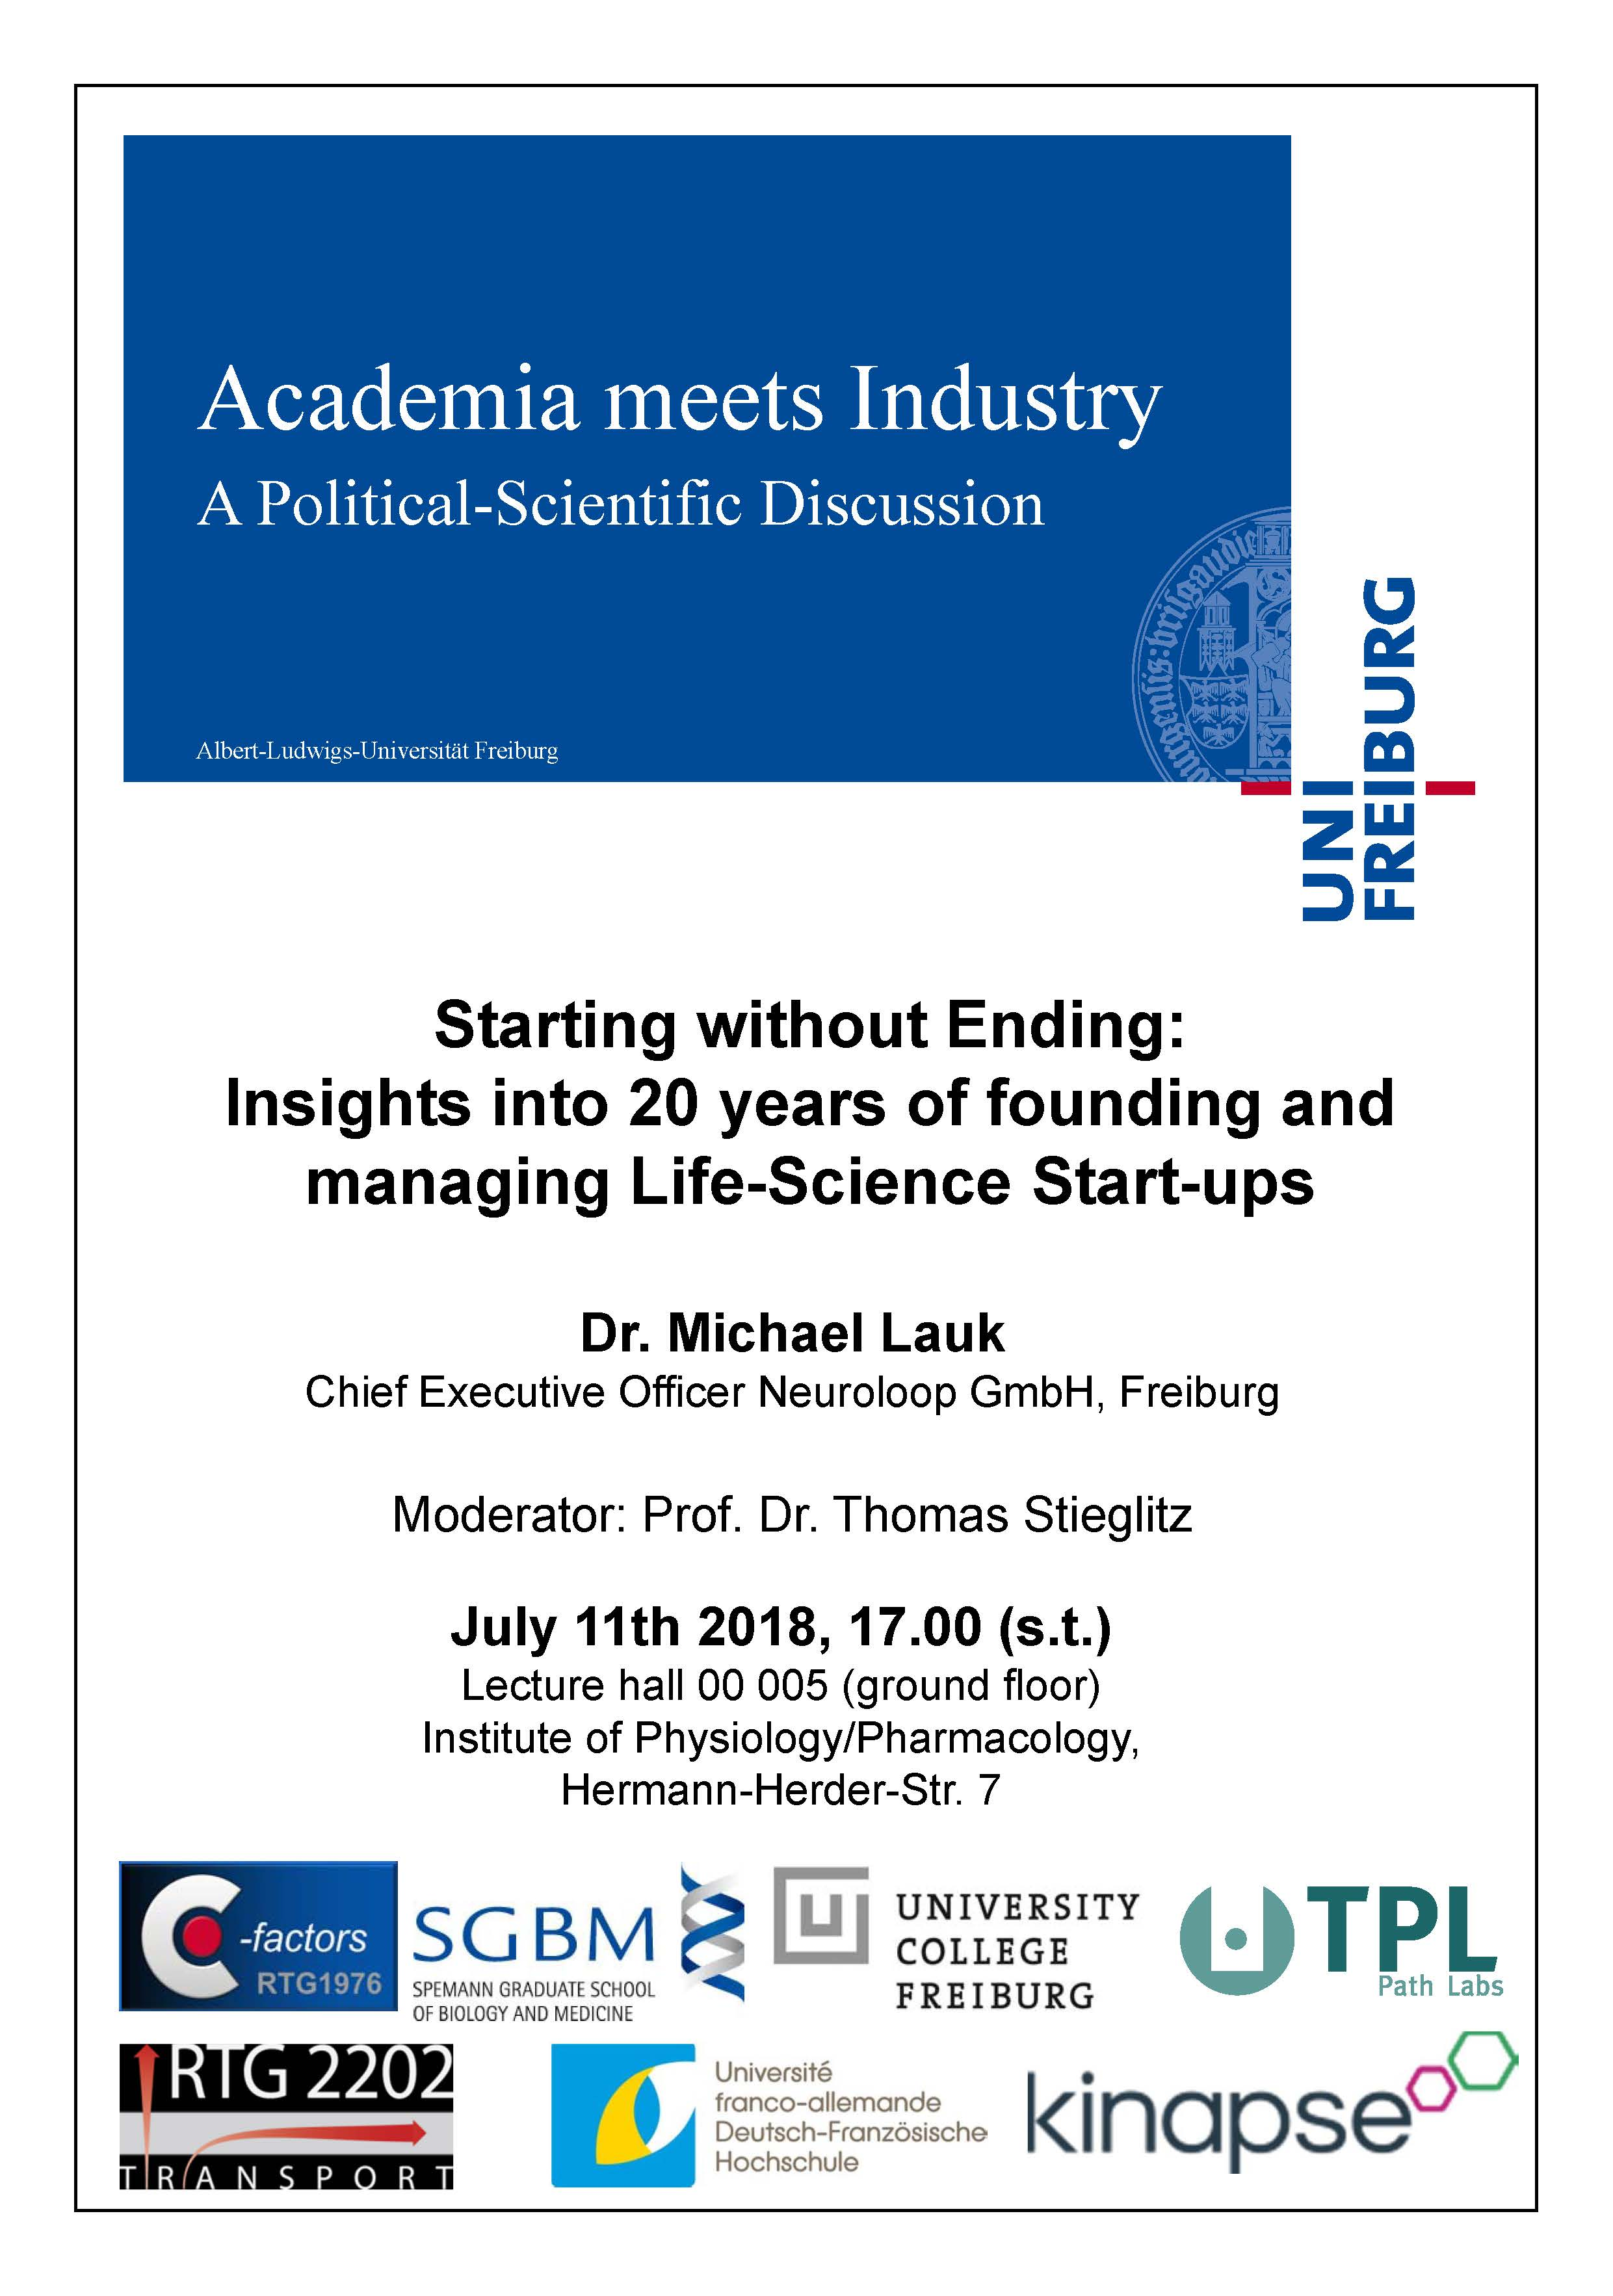 Academia meets Industry Dr. Lauk